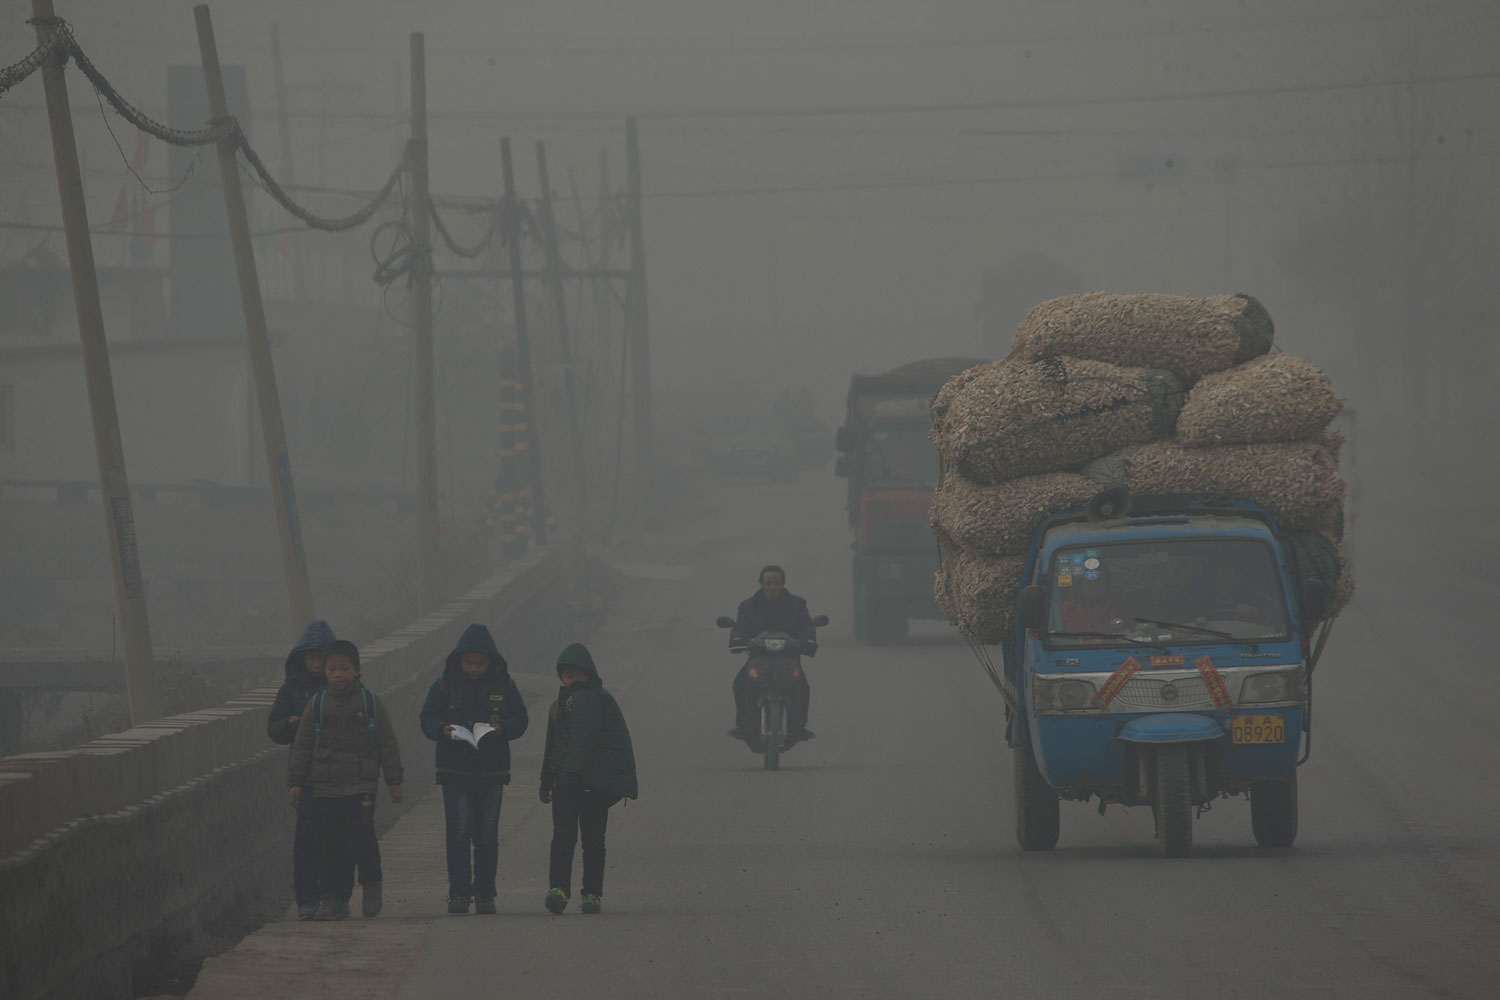 Children walk back home after school on a severely polluted day in Shijiazhuang, in northern China's Hebei province, Feb. 26, 2014.